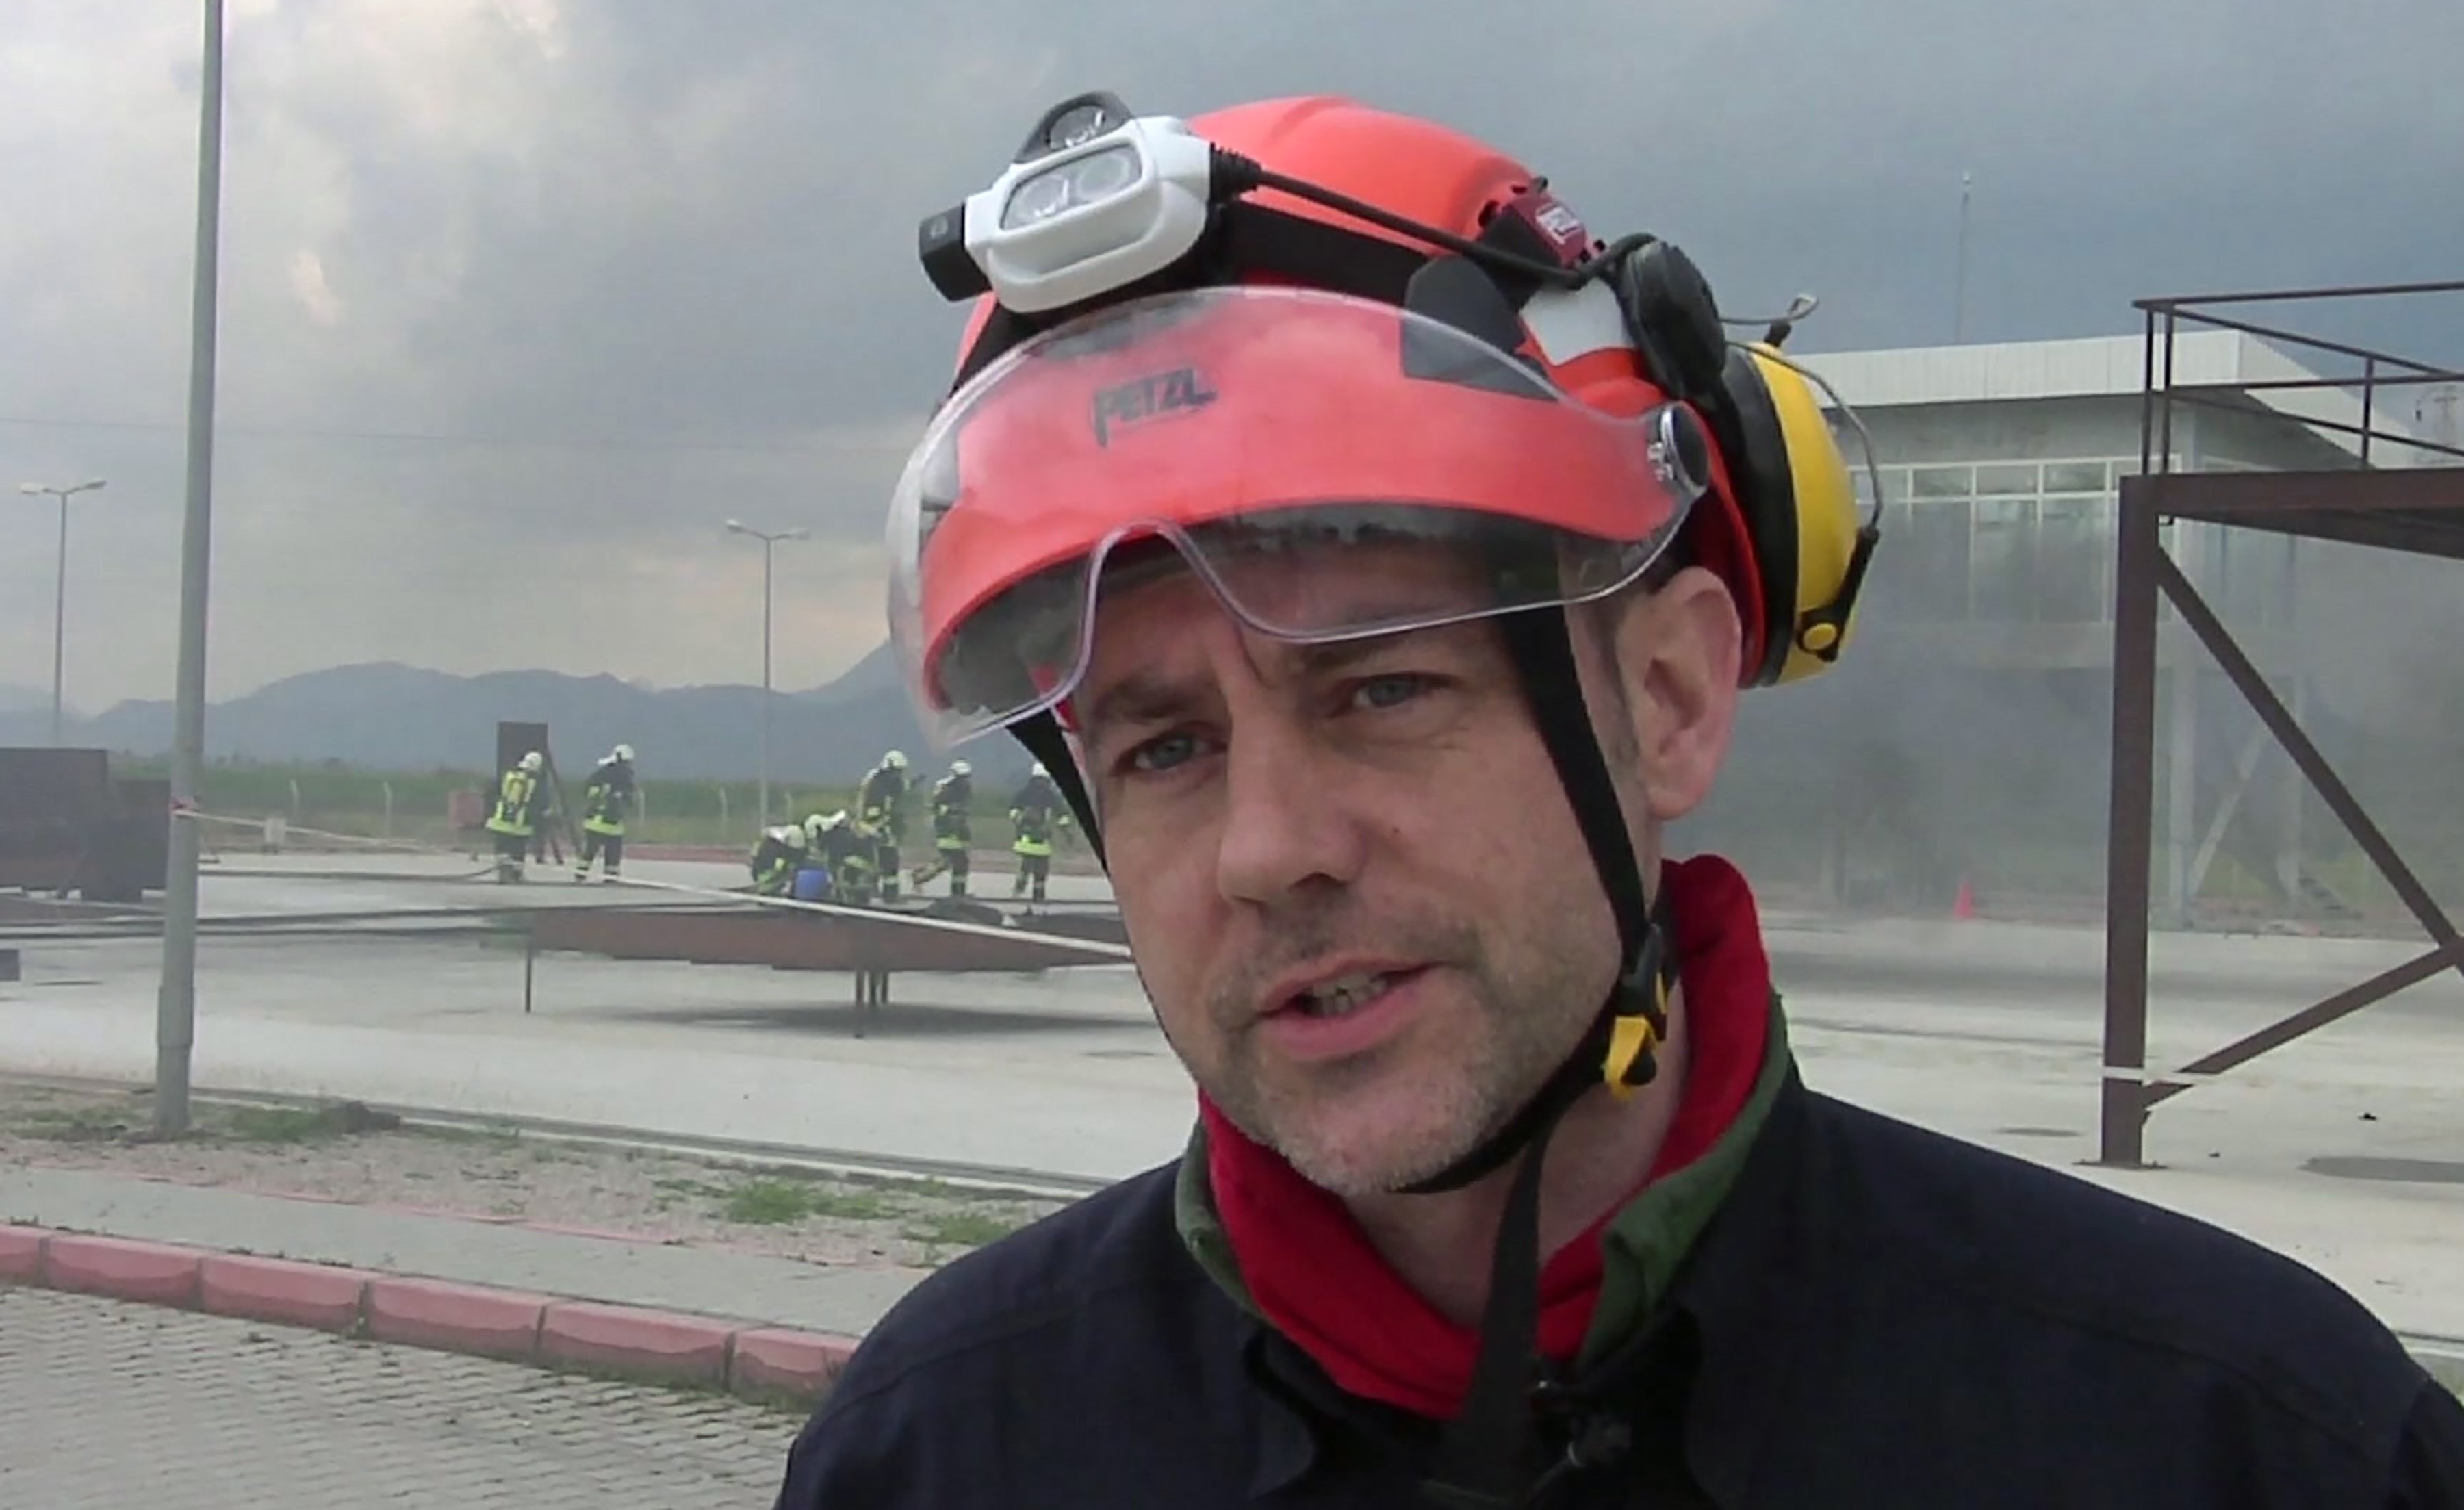 FILE - In this image taken from file video, showing James Le Mesurier, founder and director of Mayday Rescue, talks to the media during training exercises in southern Turkey, March 19, 2015.  Turkey's state-run news agency report Monday Nov. 11, 2019, that a former British army officer who helped found the  White Helmets  volunteer organisation in Syria, has been found dead in Istanbul. (AP Photo, FILE)